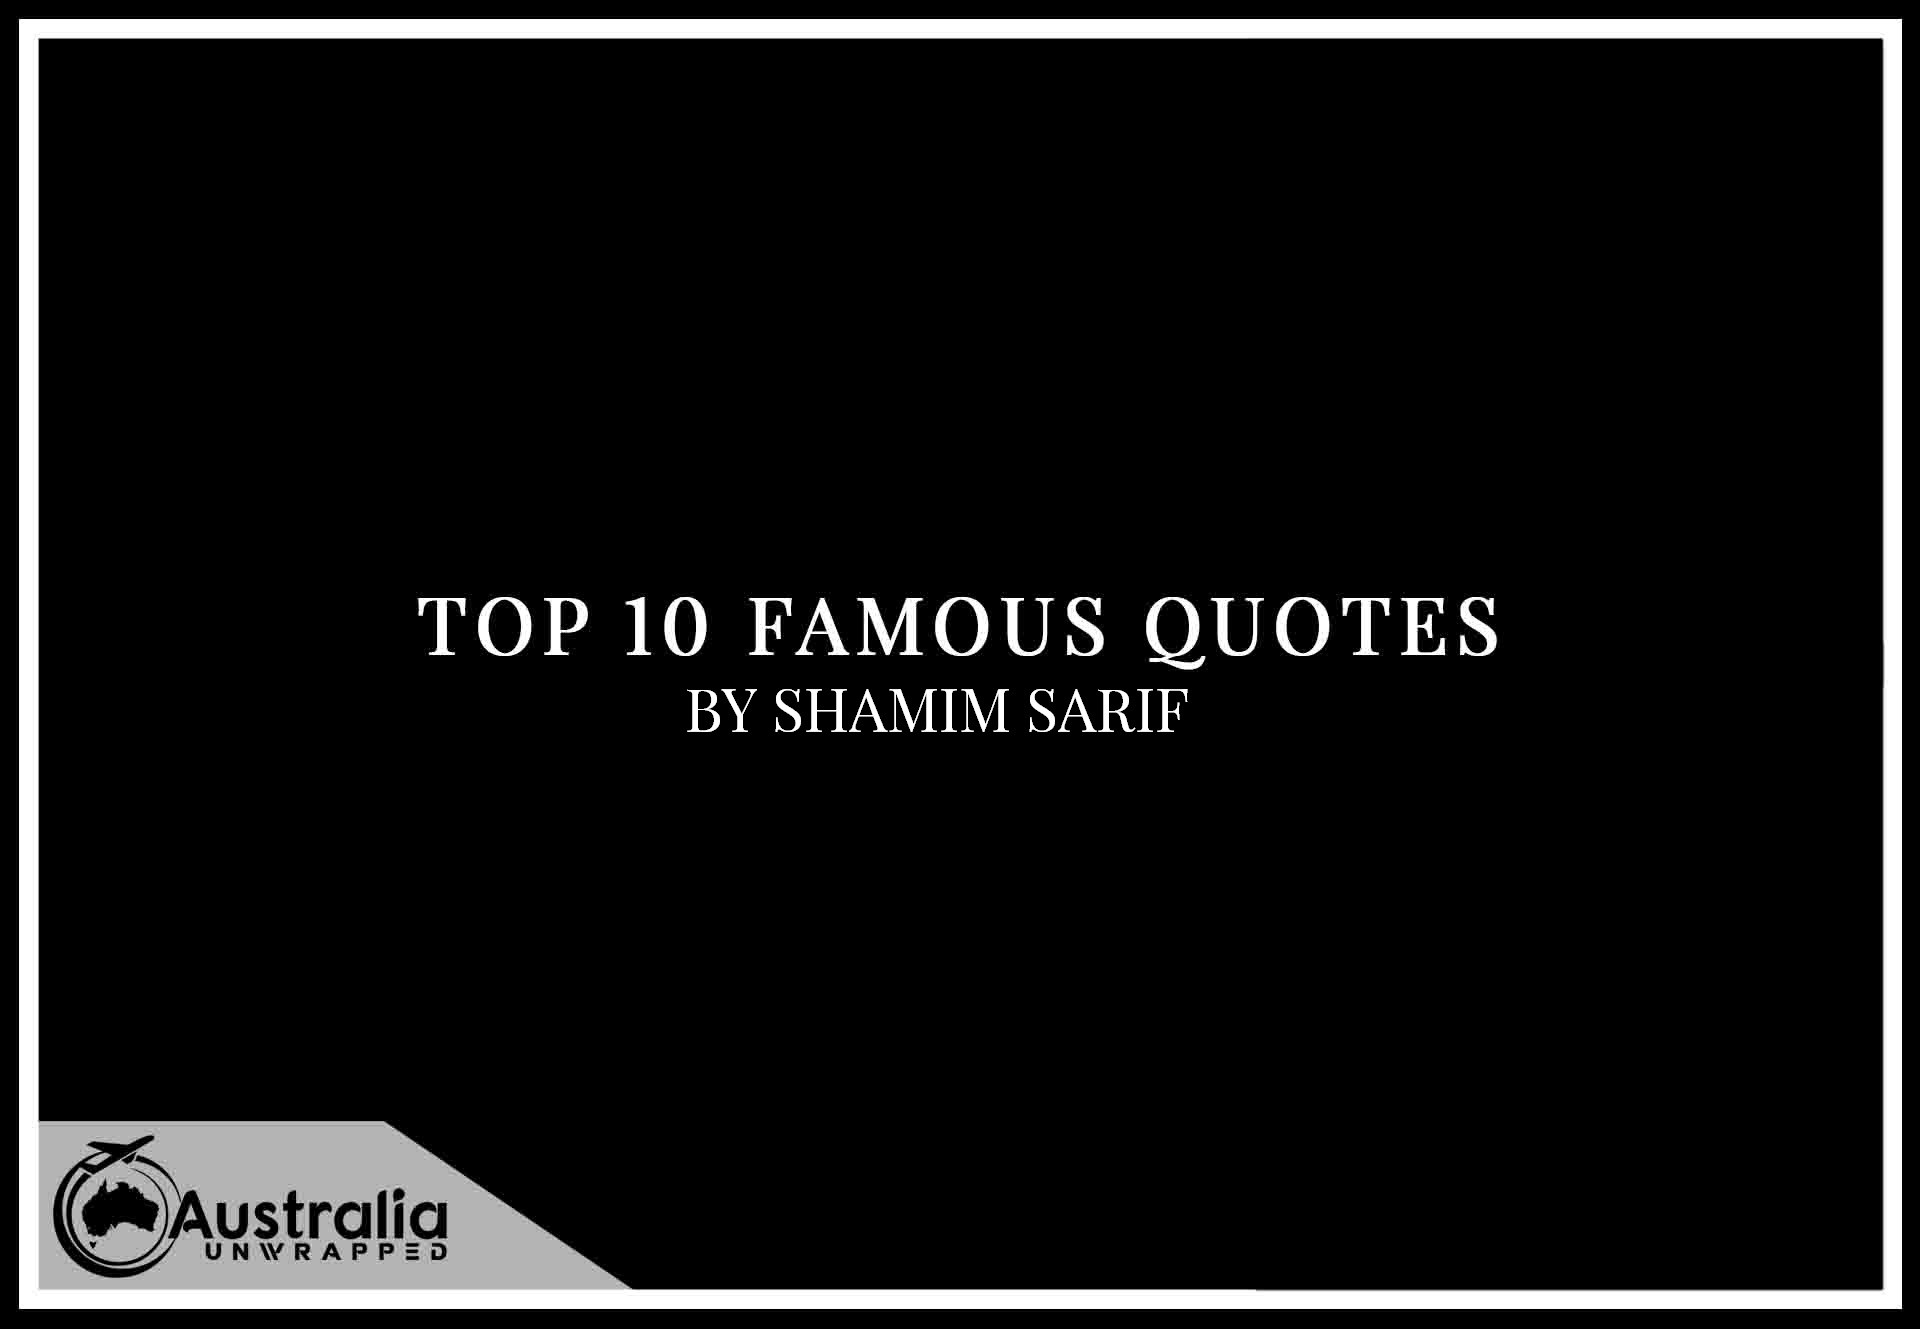 Top 10 Famous Quotes by Author Shamim Sarif